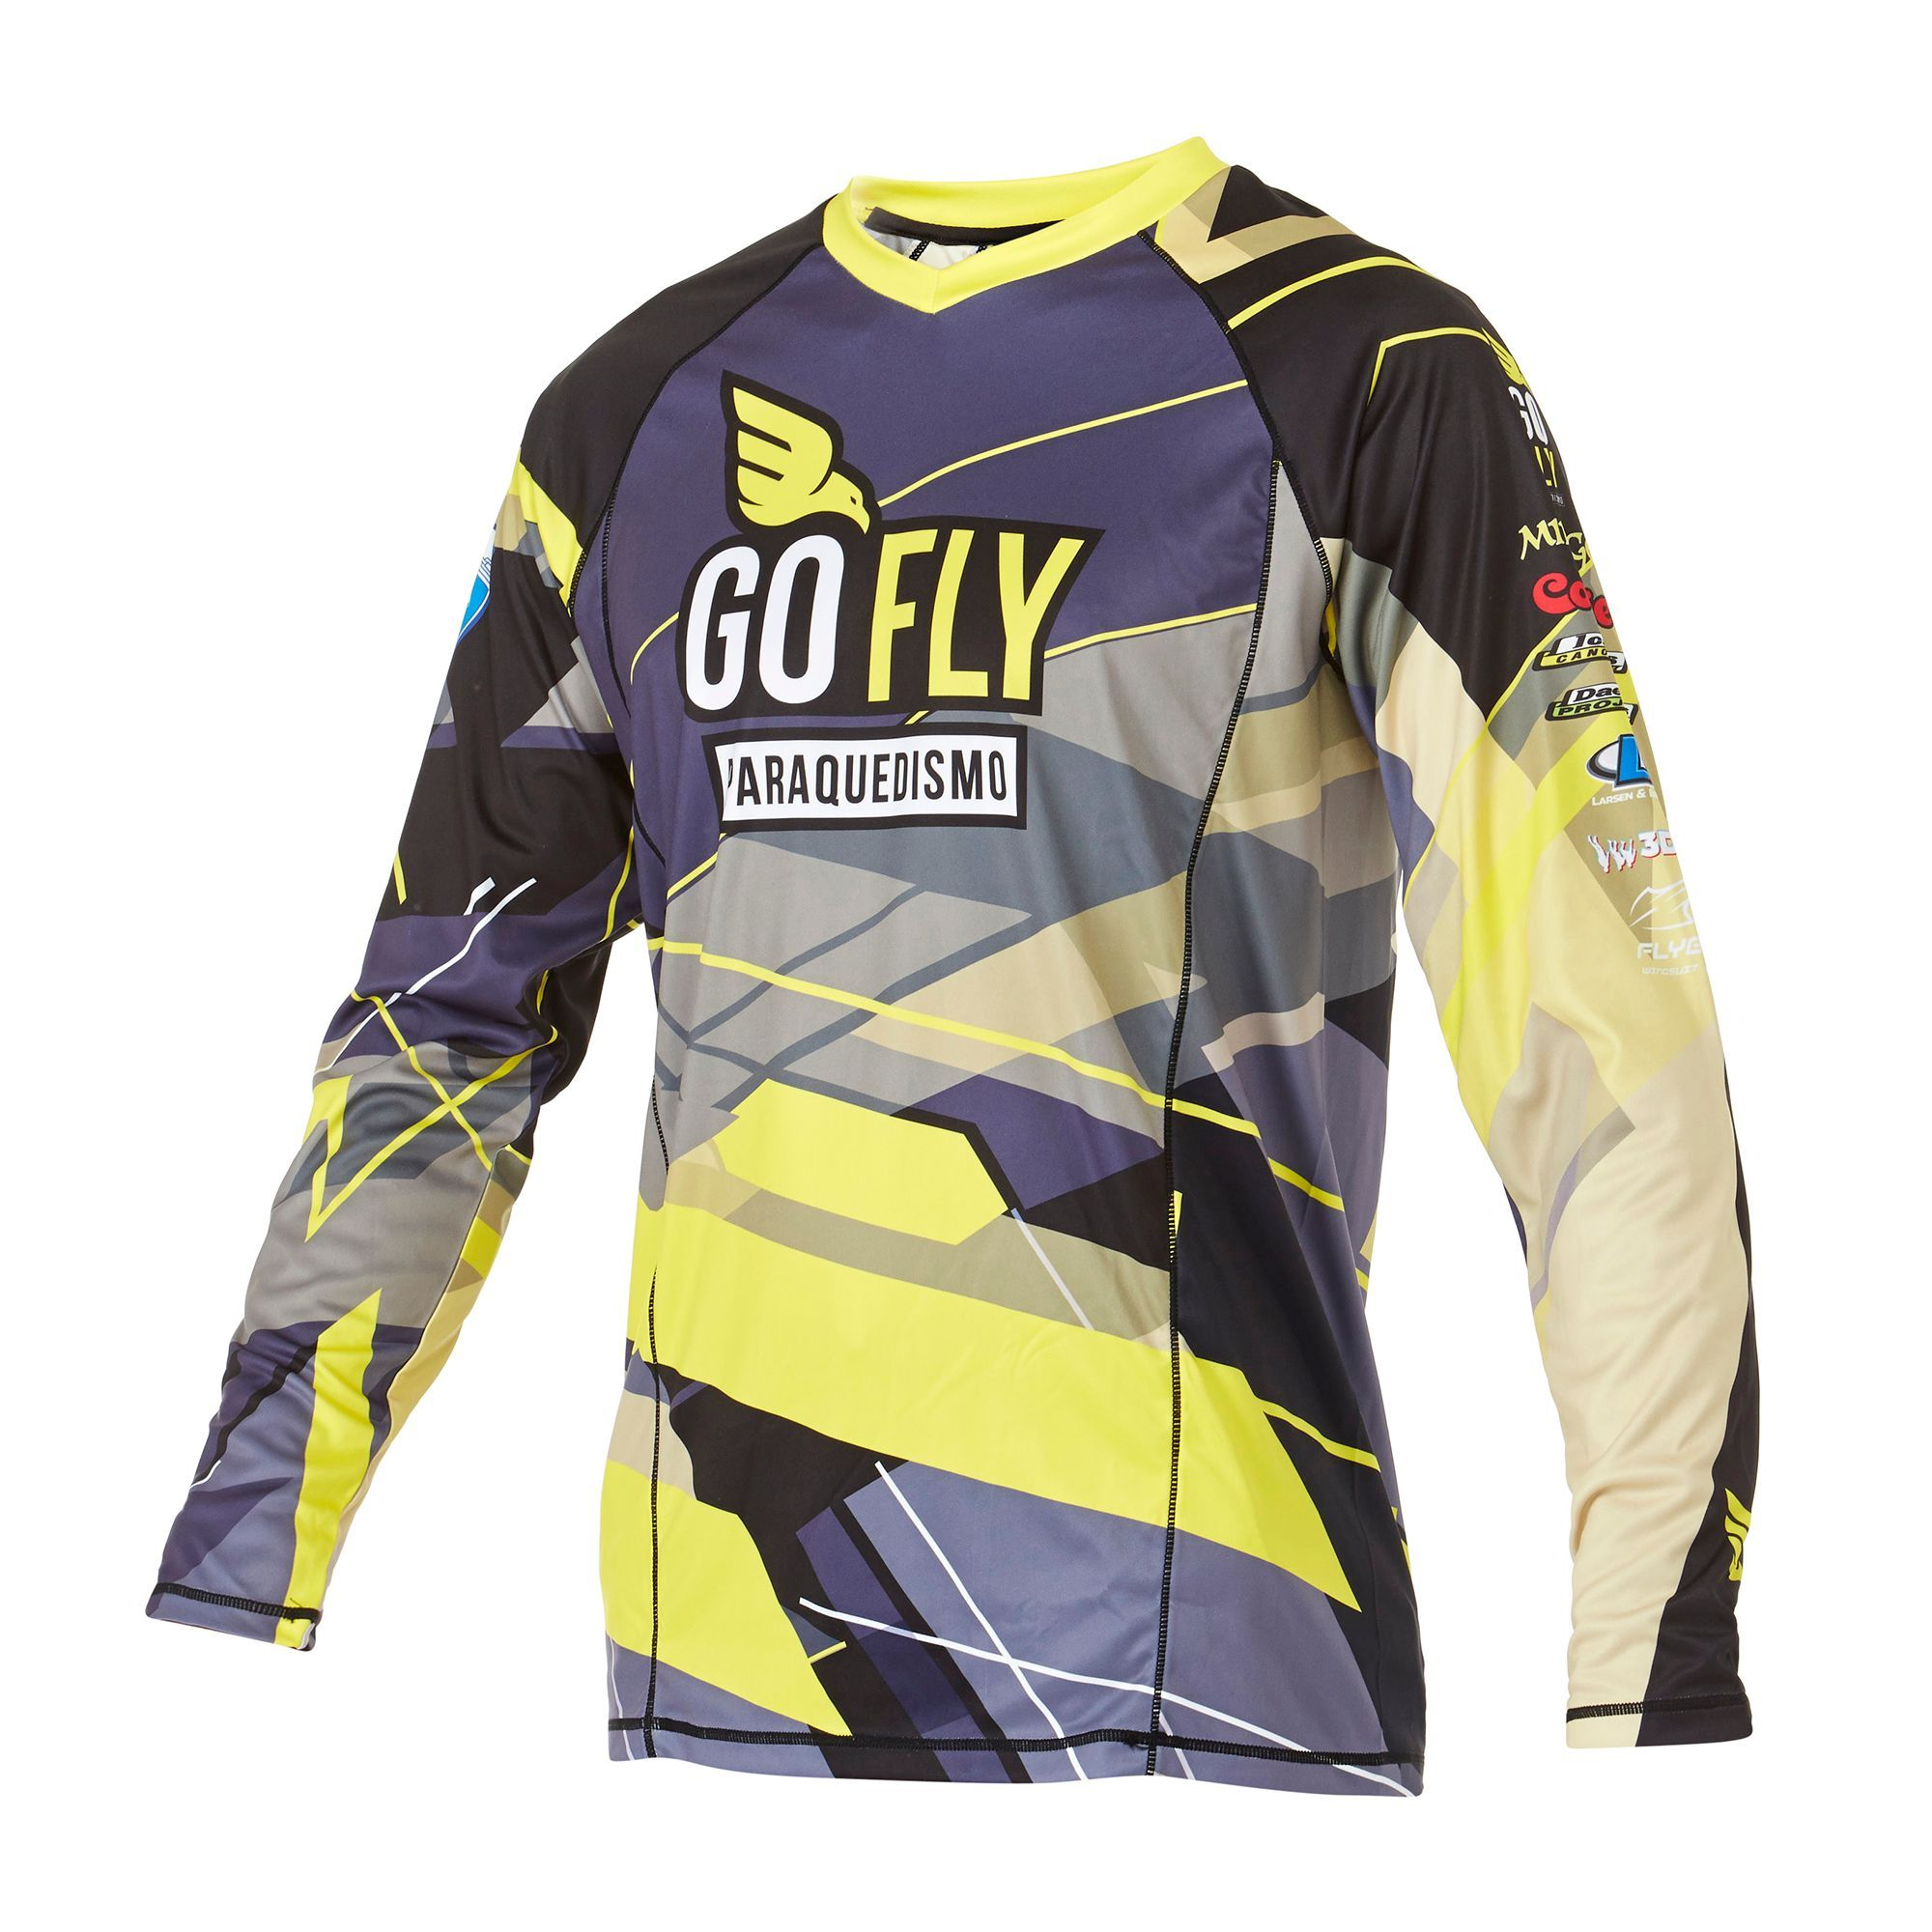 Download Infinite Skydiving Jersey In Gold Colorway At Manufactory Apparel Products Shown Infinite Skydiving Jersey For Go Fly Customskydivingjers Olahraga Motogp